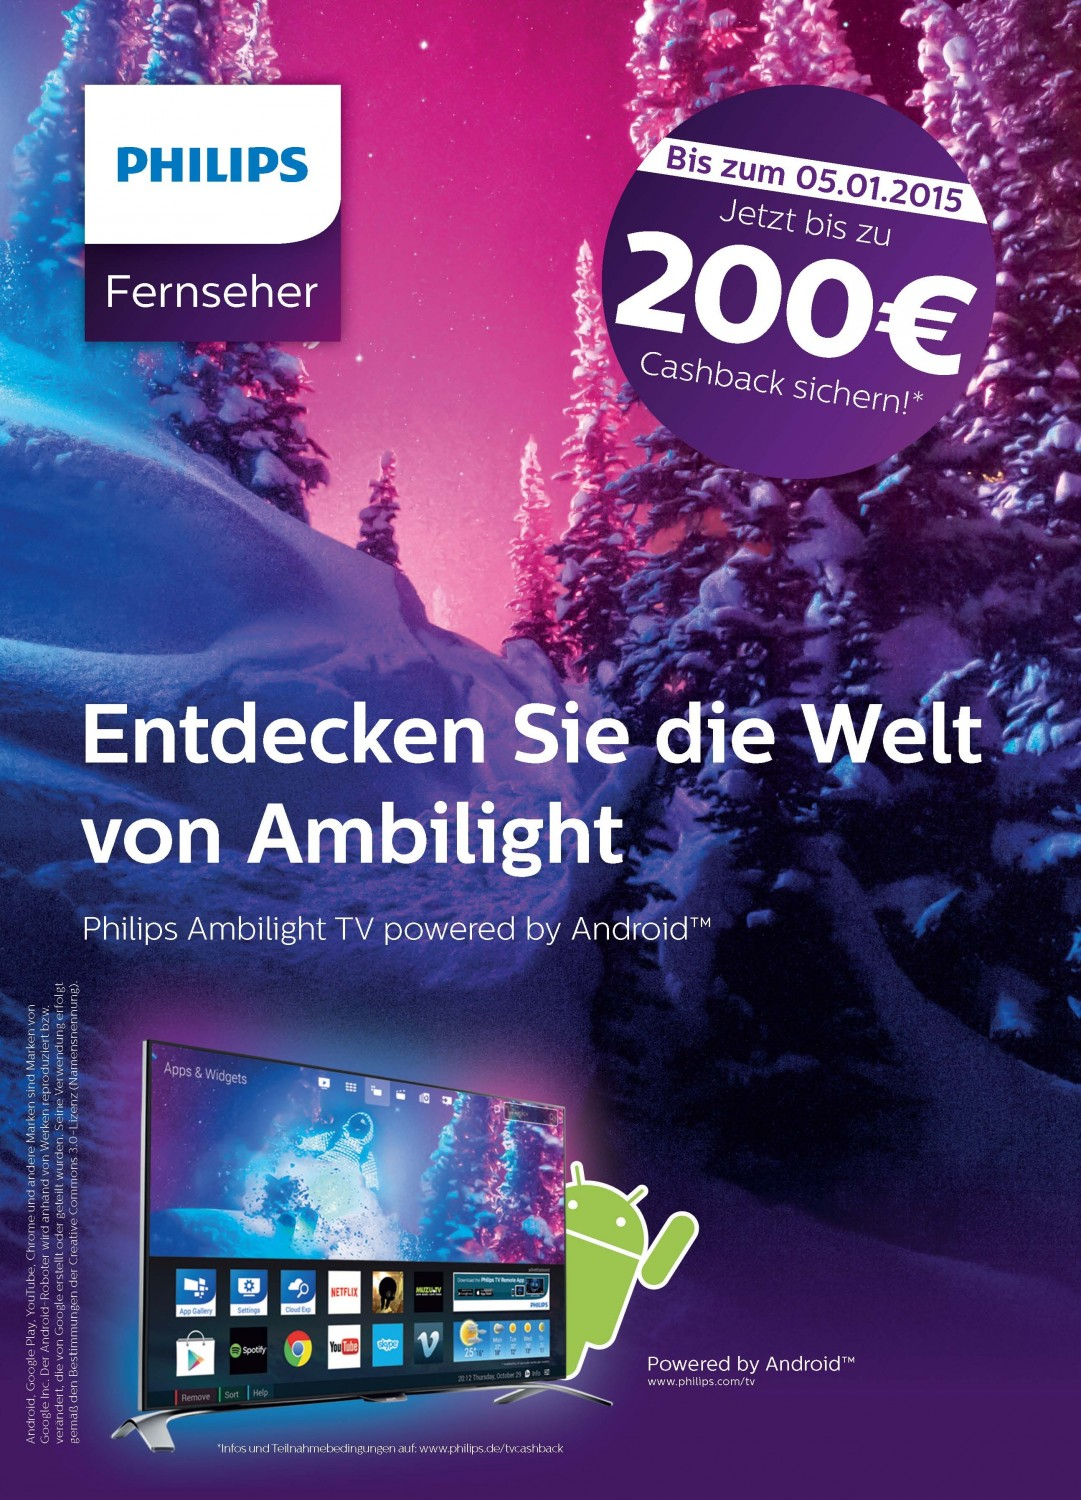 philips zahlt bei fernseher kauf 200 euro zur ck aktion bis 5 januar. Black Bedroom Furniture Sets. Home Design Ideas